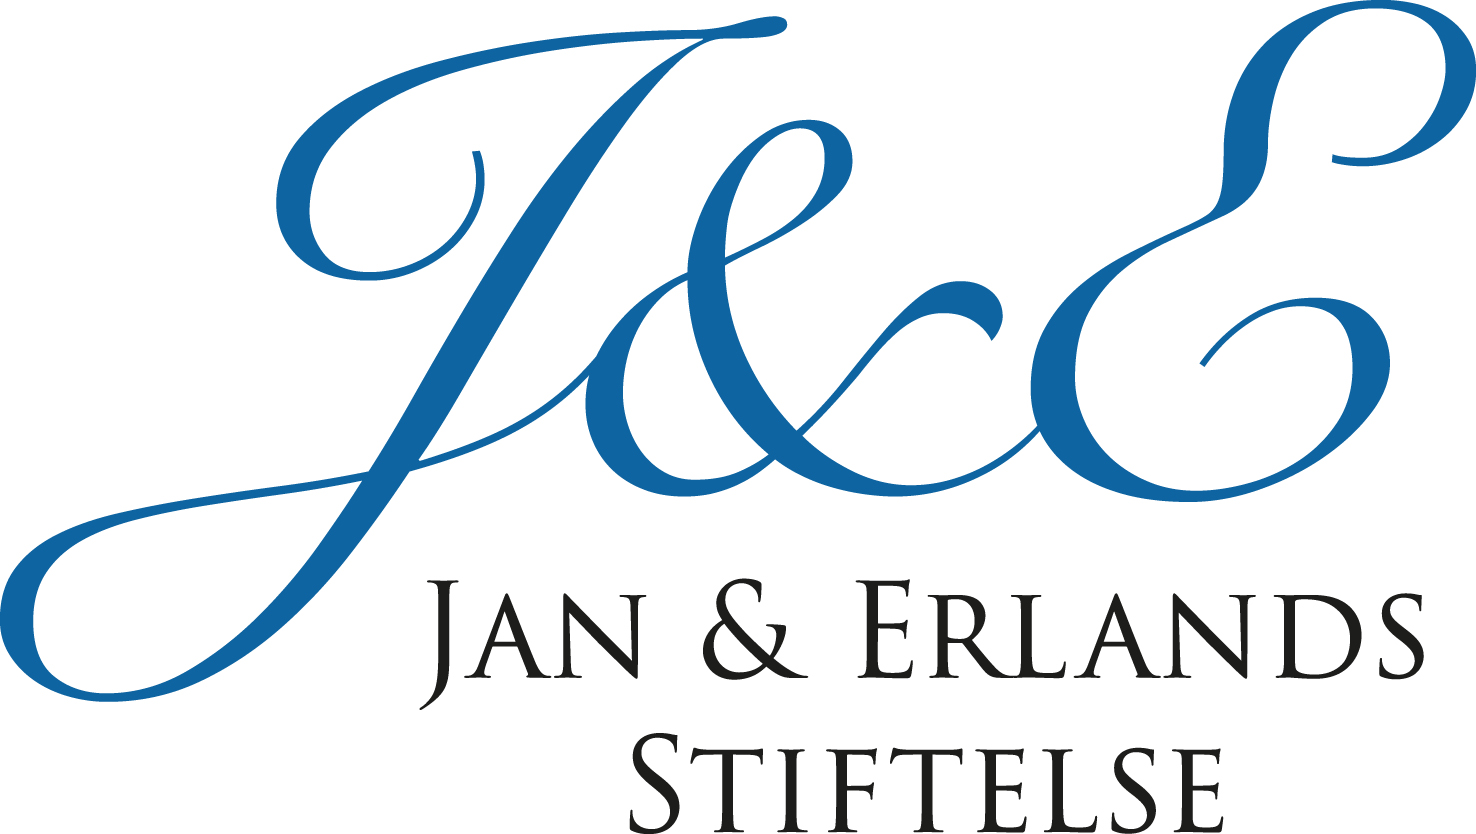 Jan & Erlands Stiftelse